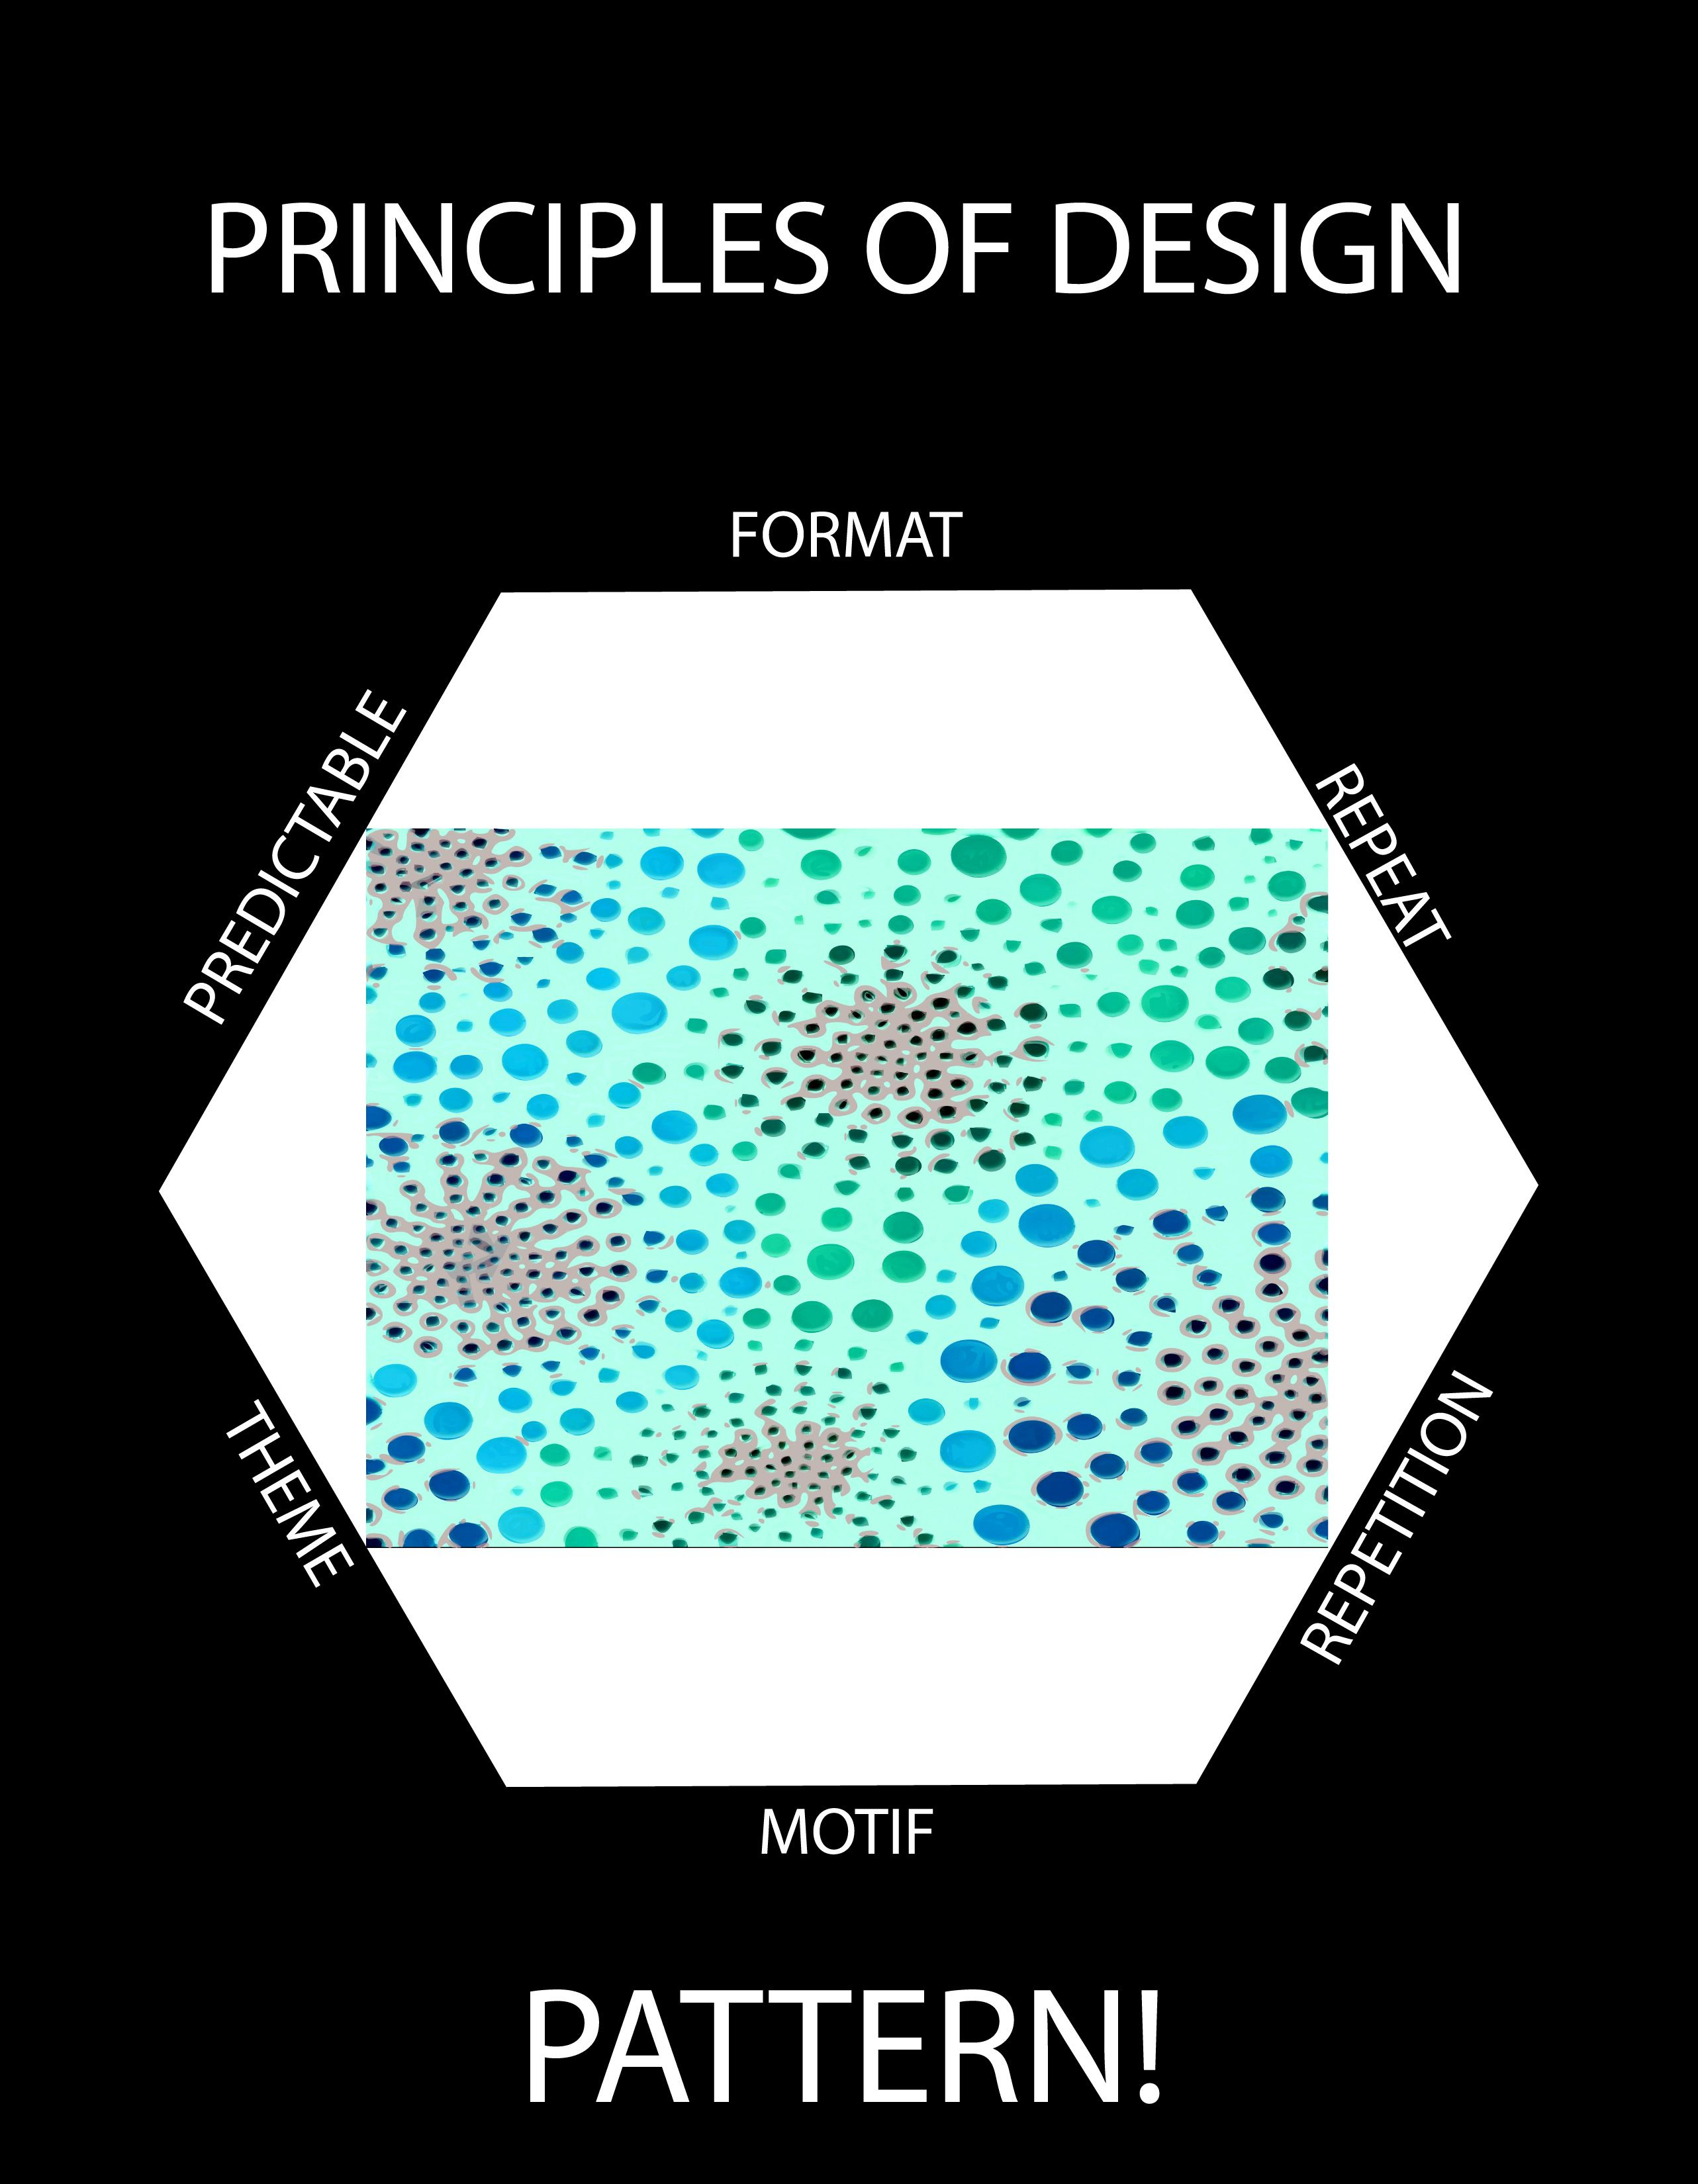 Organization In The Visual Arts Principles Of Design : Final principles of design posters patterns and art elements